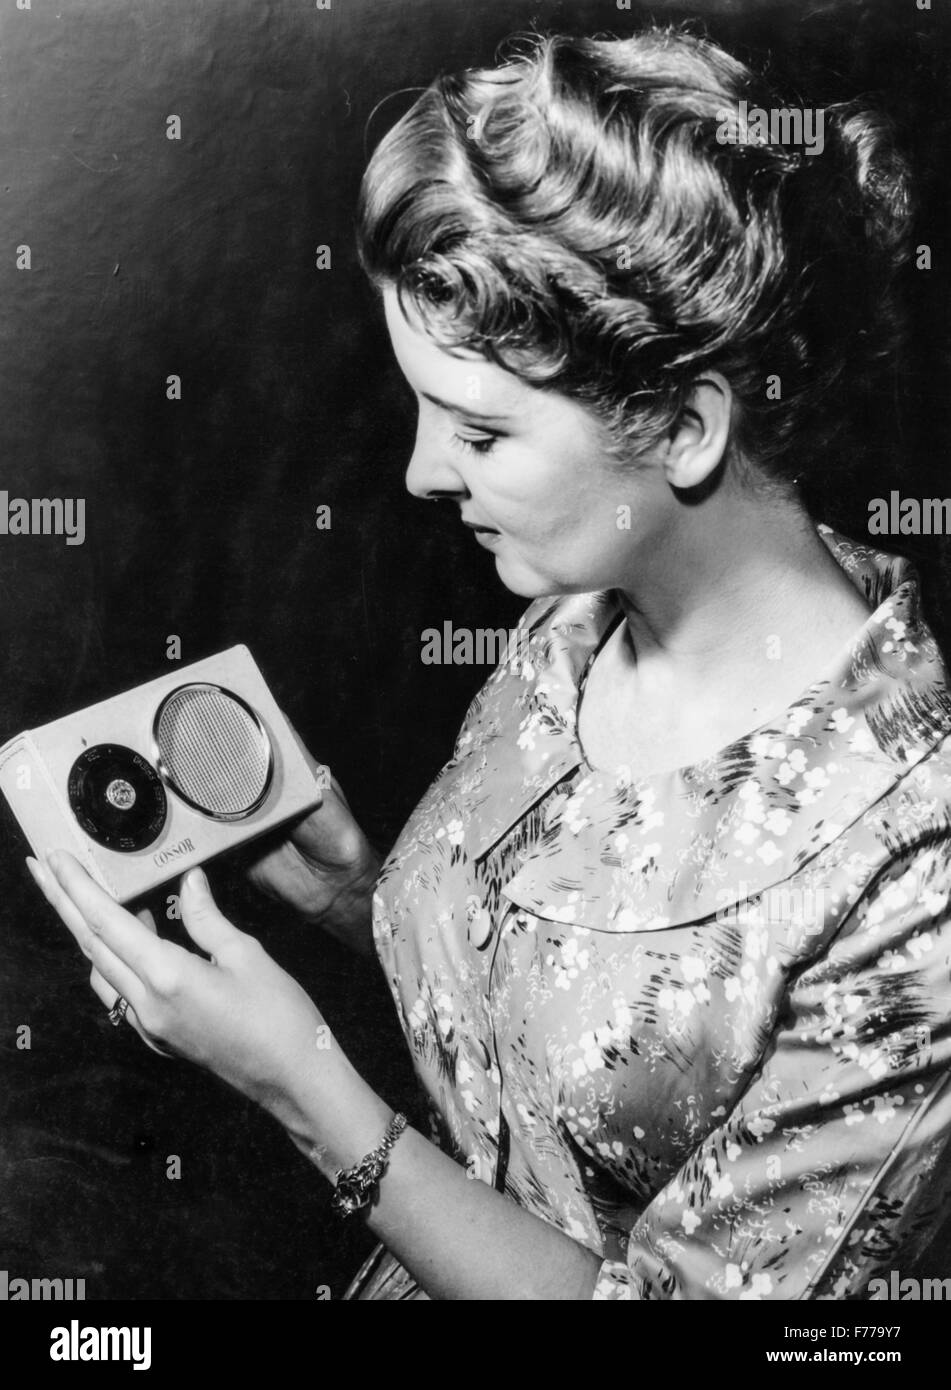 a woman with a powered by solar energy portable radio,1957 - Stock Image